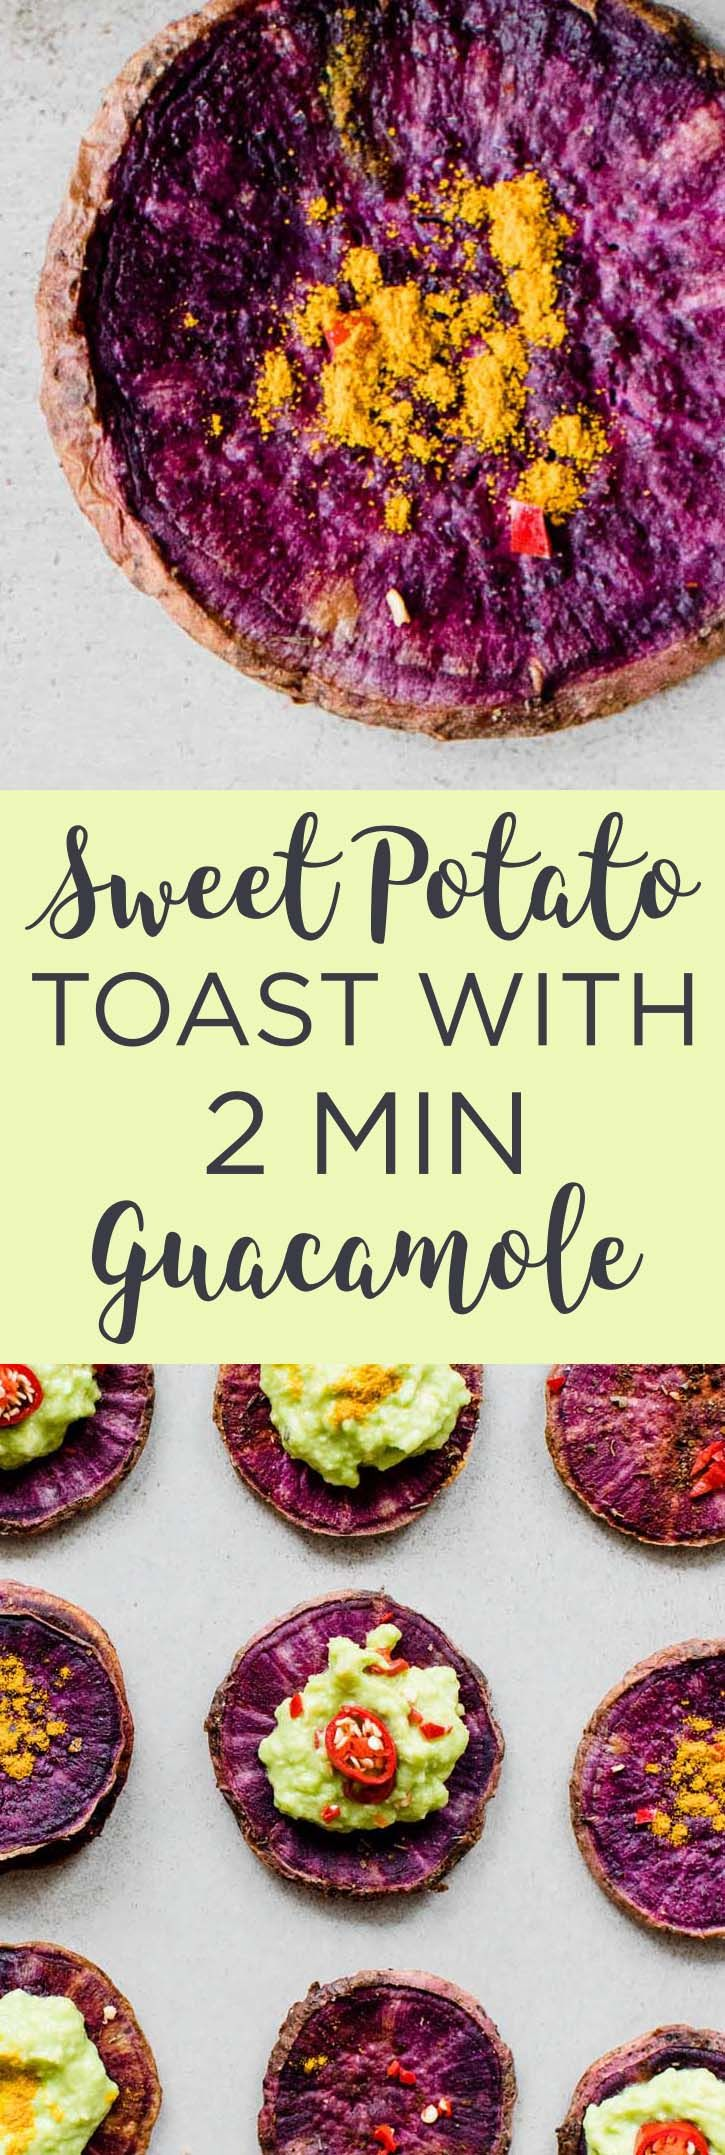 Sweet Potato Toast With Guacamole Recipe